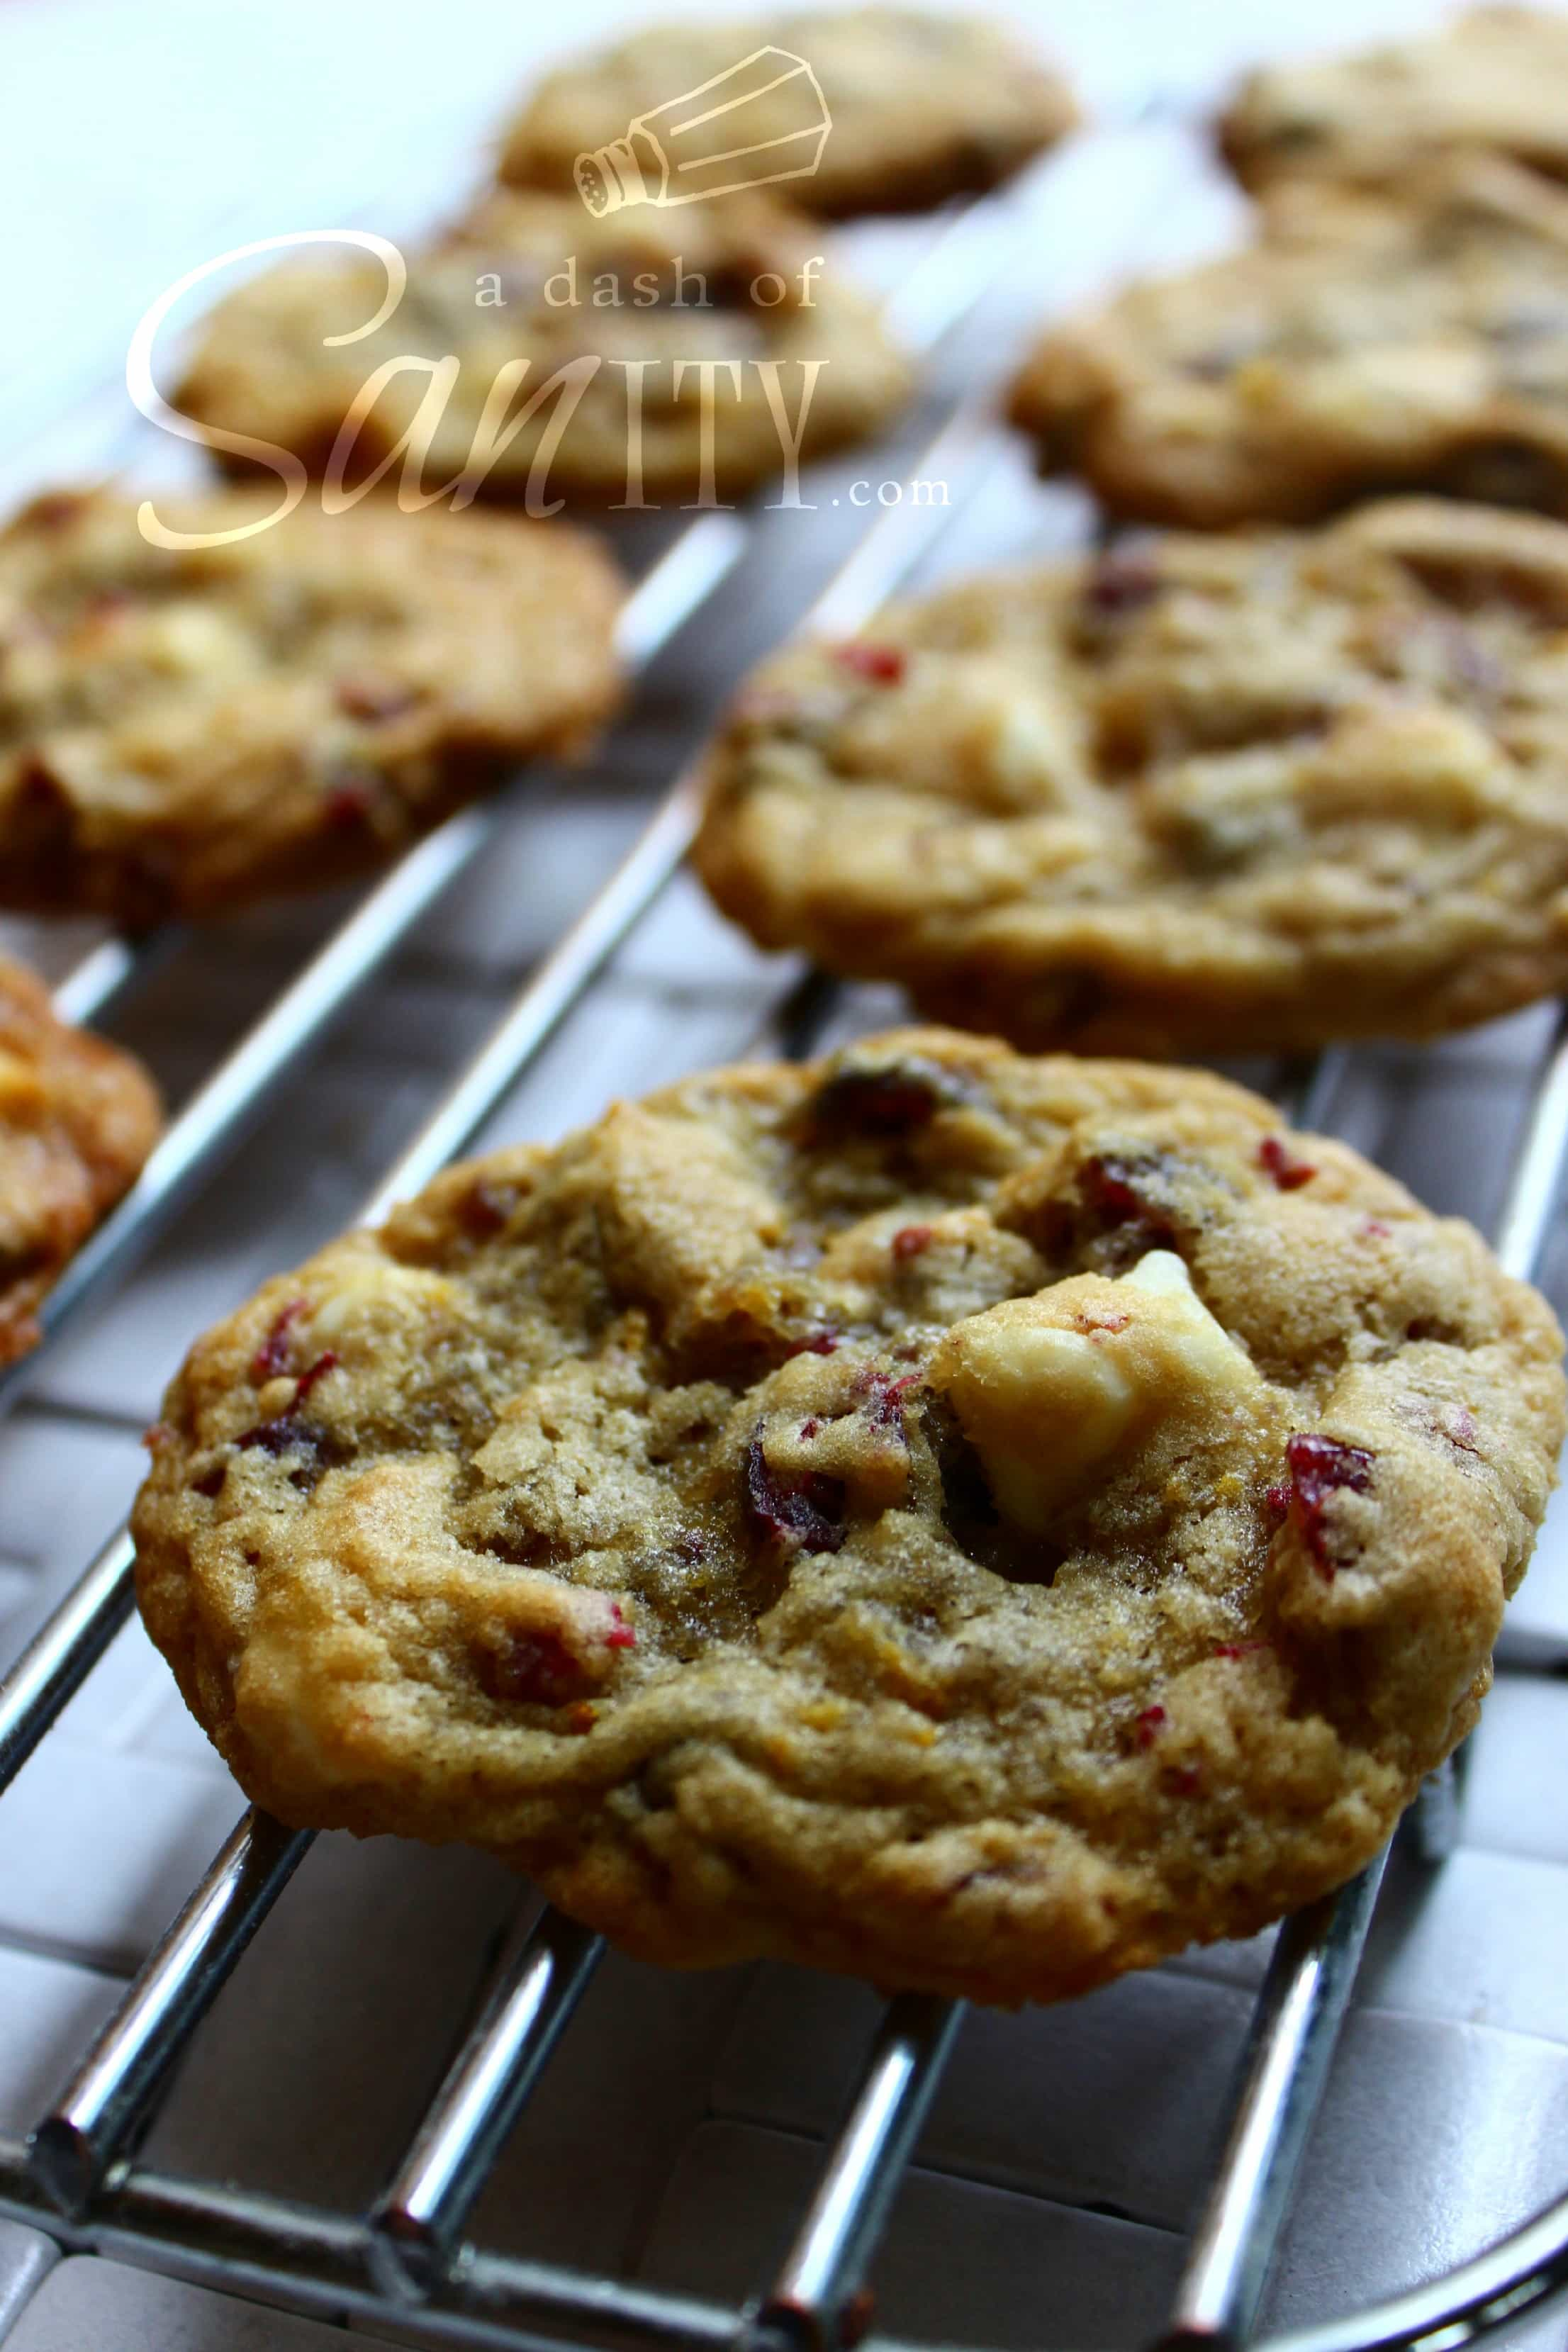 Cranberry-Orange White Chocolate & Macadamia Nut Cookies on a wire rack